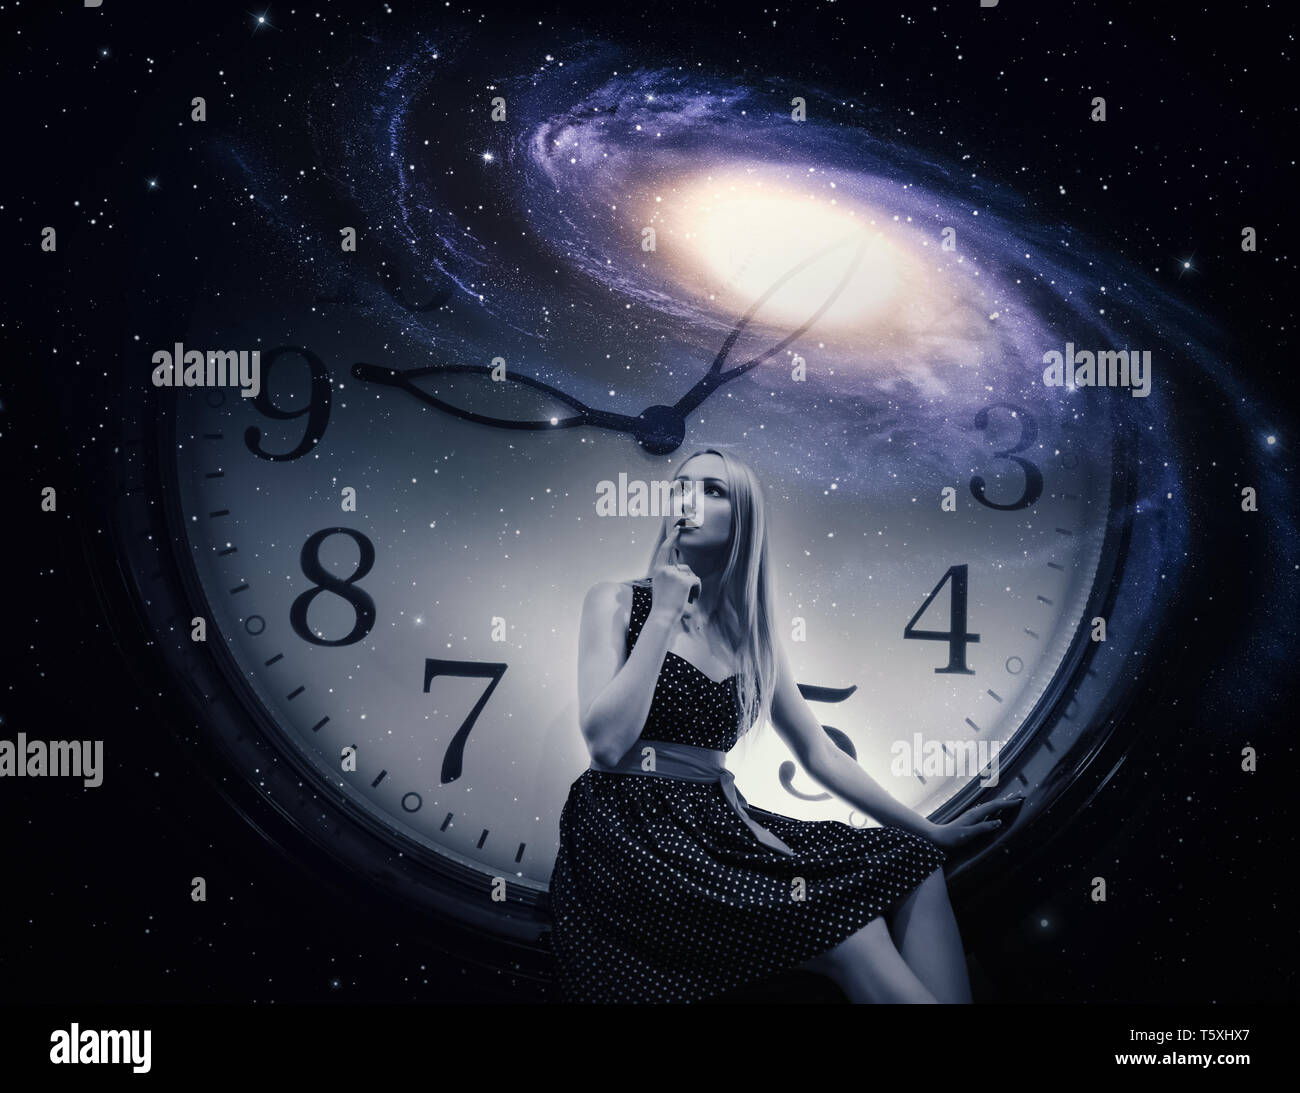 Young woman dressed in a dress with giant clock and galaxy. Time concept. Stock Photo